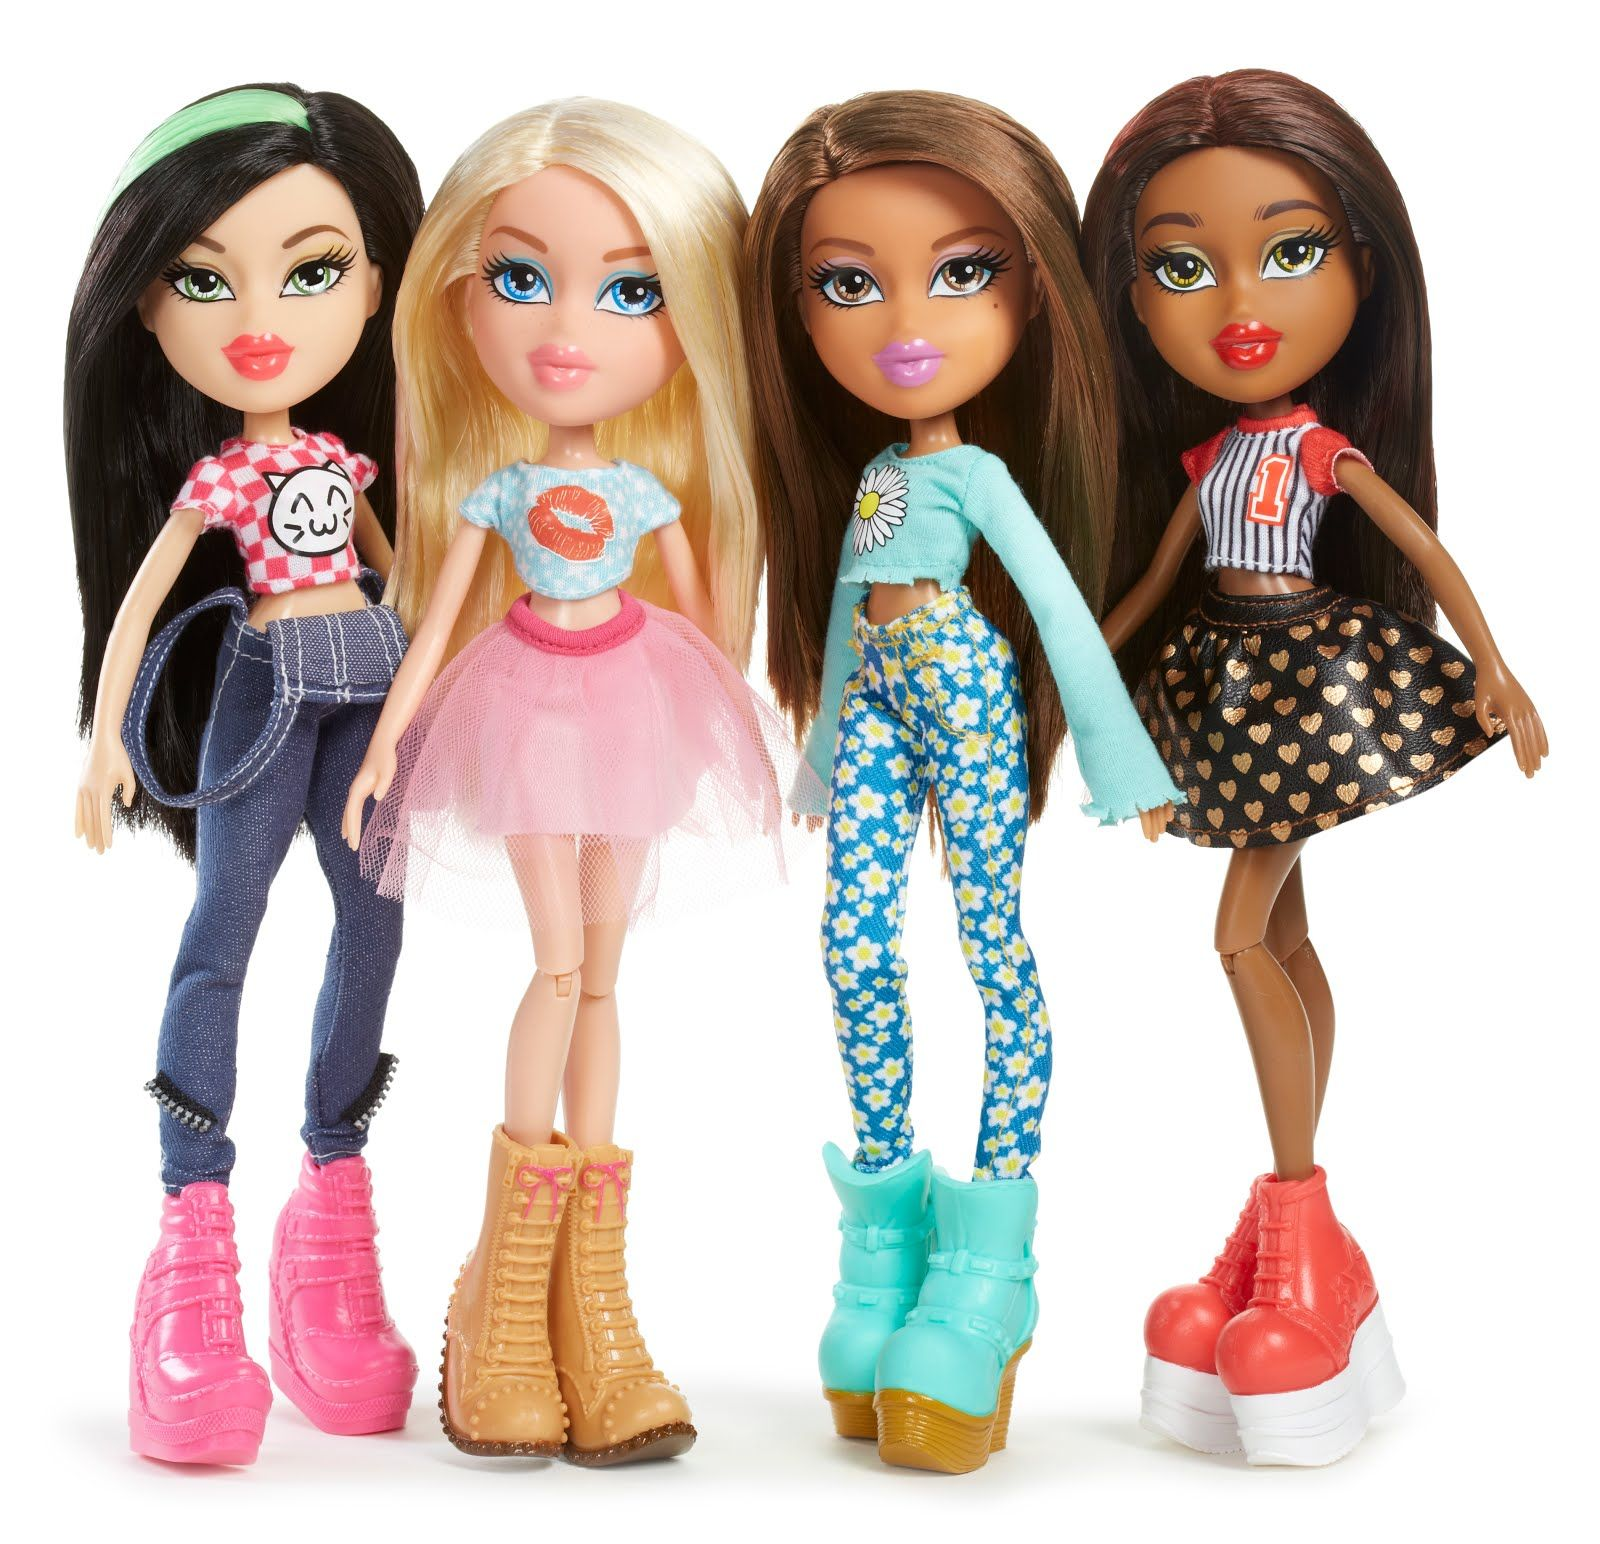 Bratz fashion pixiez breanna 52